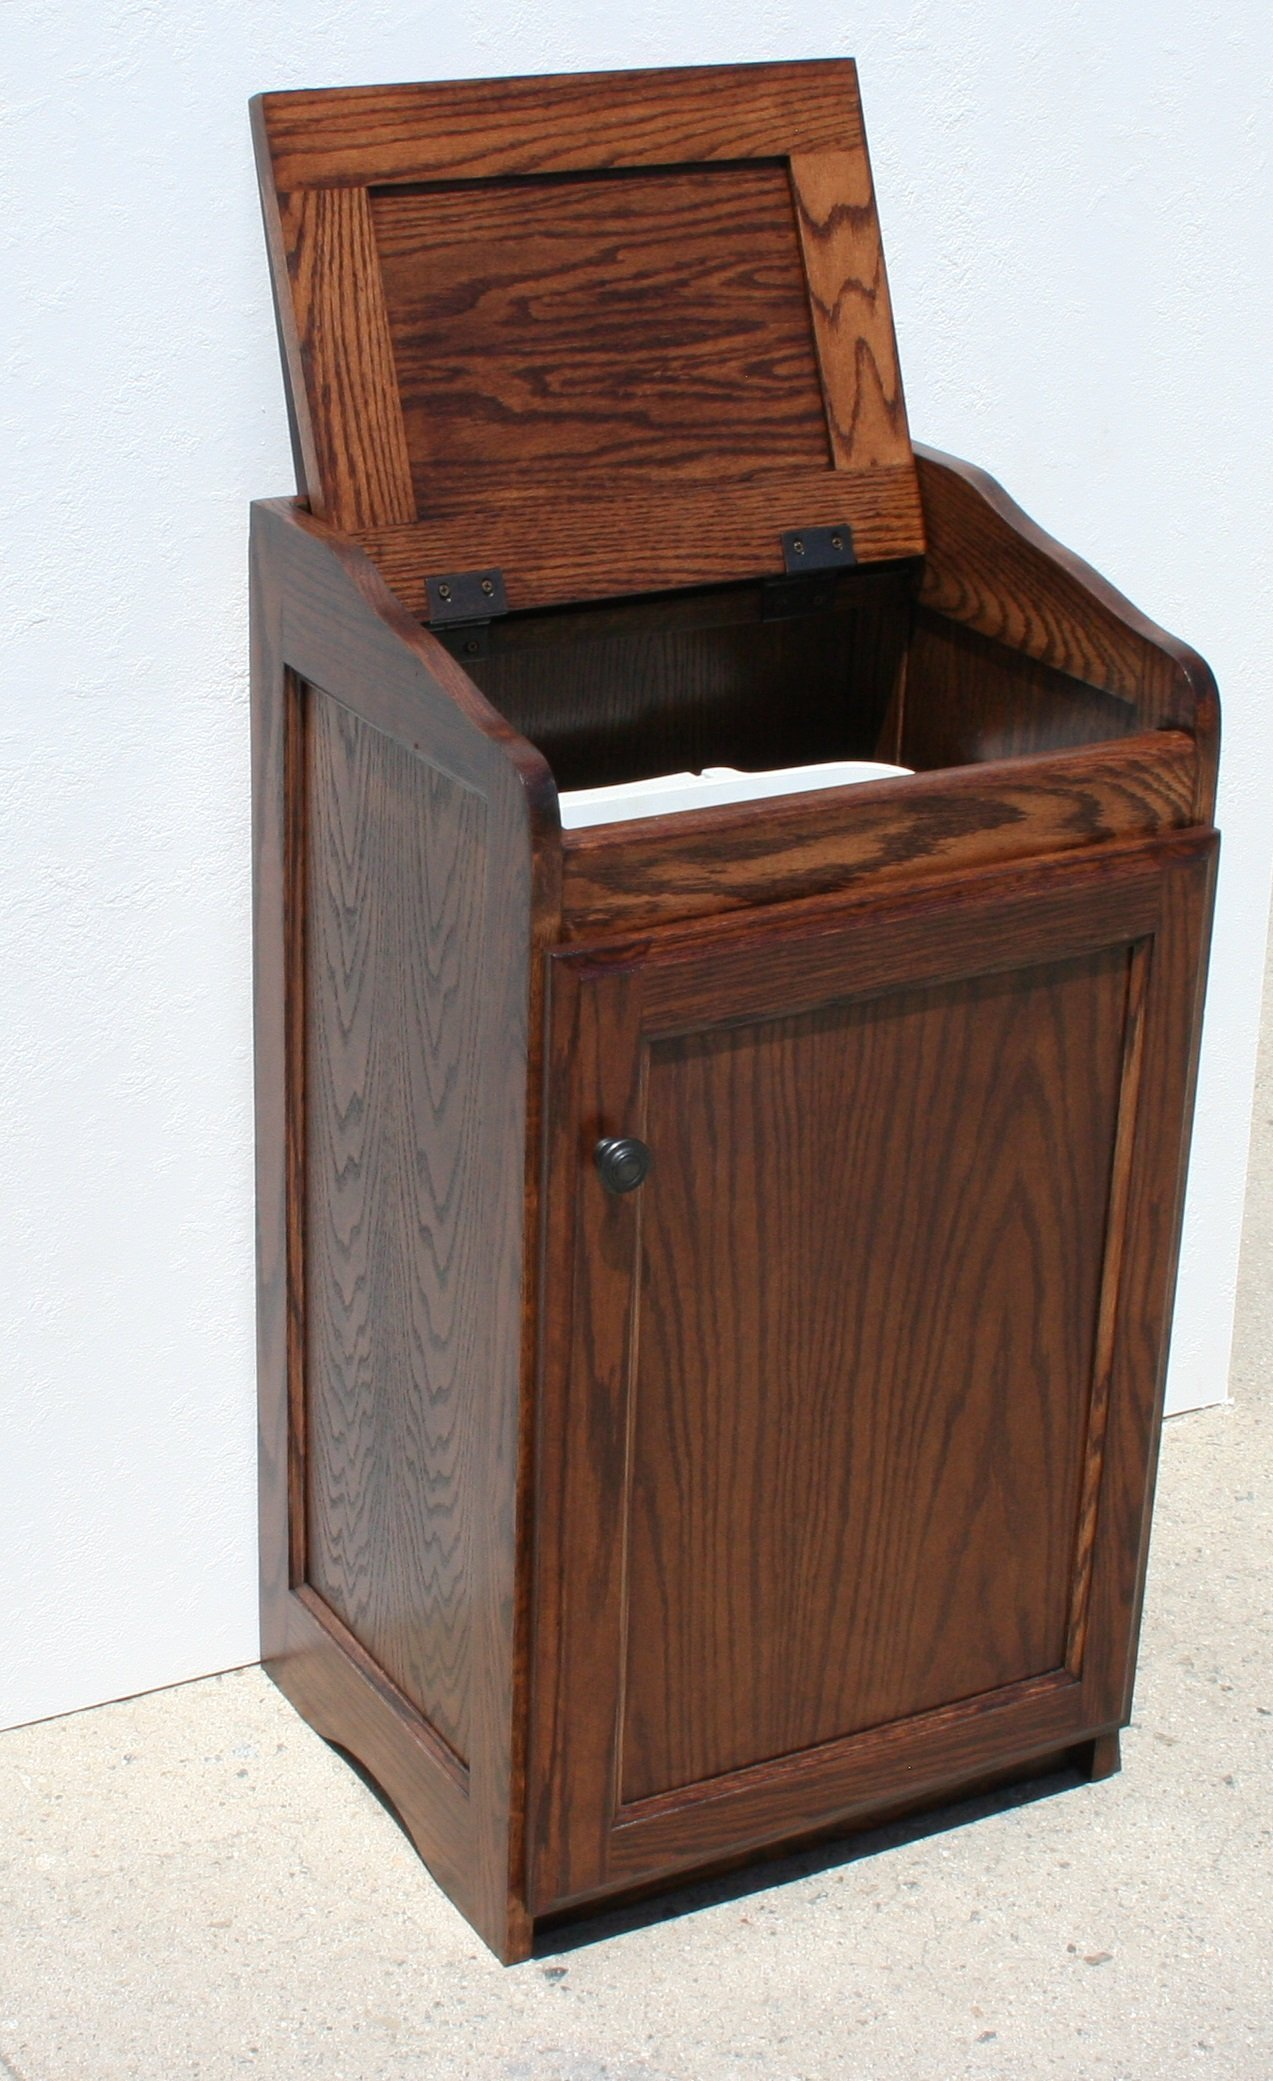 Wood Wastebasket, Kitchen Organizer Storage, Trash Can. Coffee Oak Color